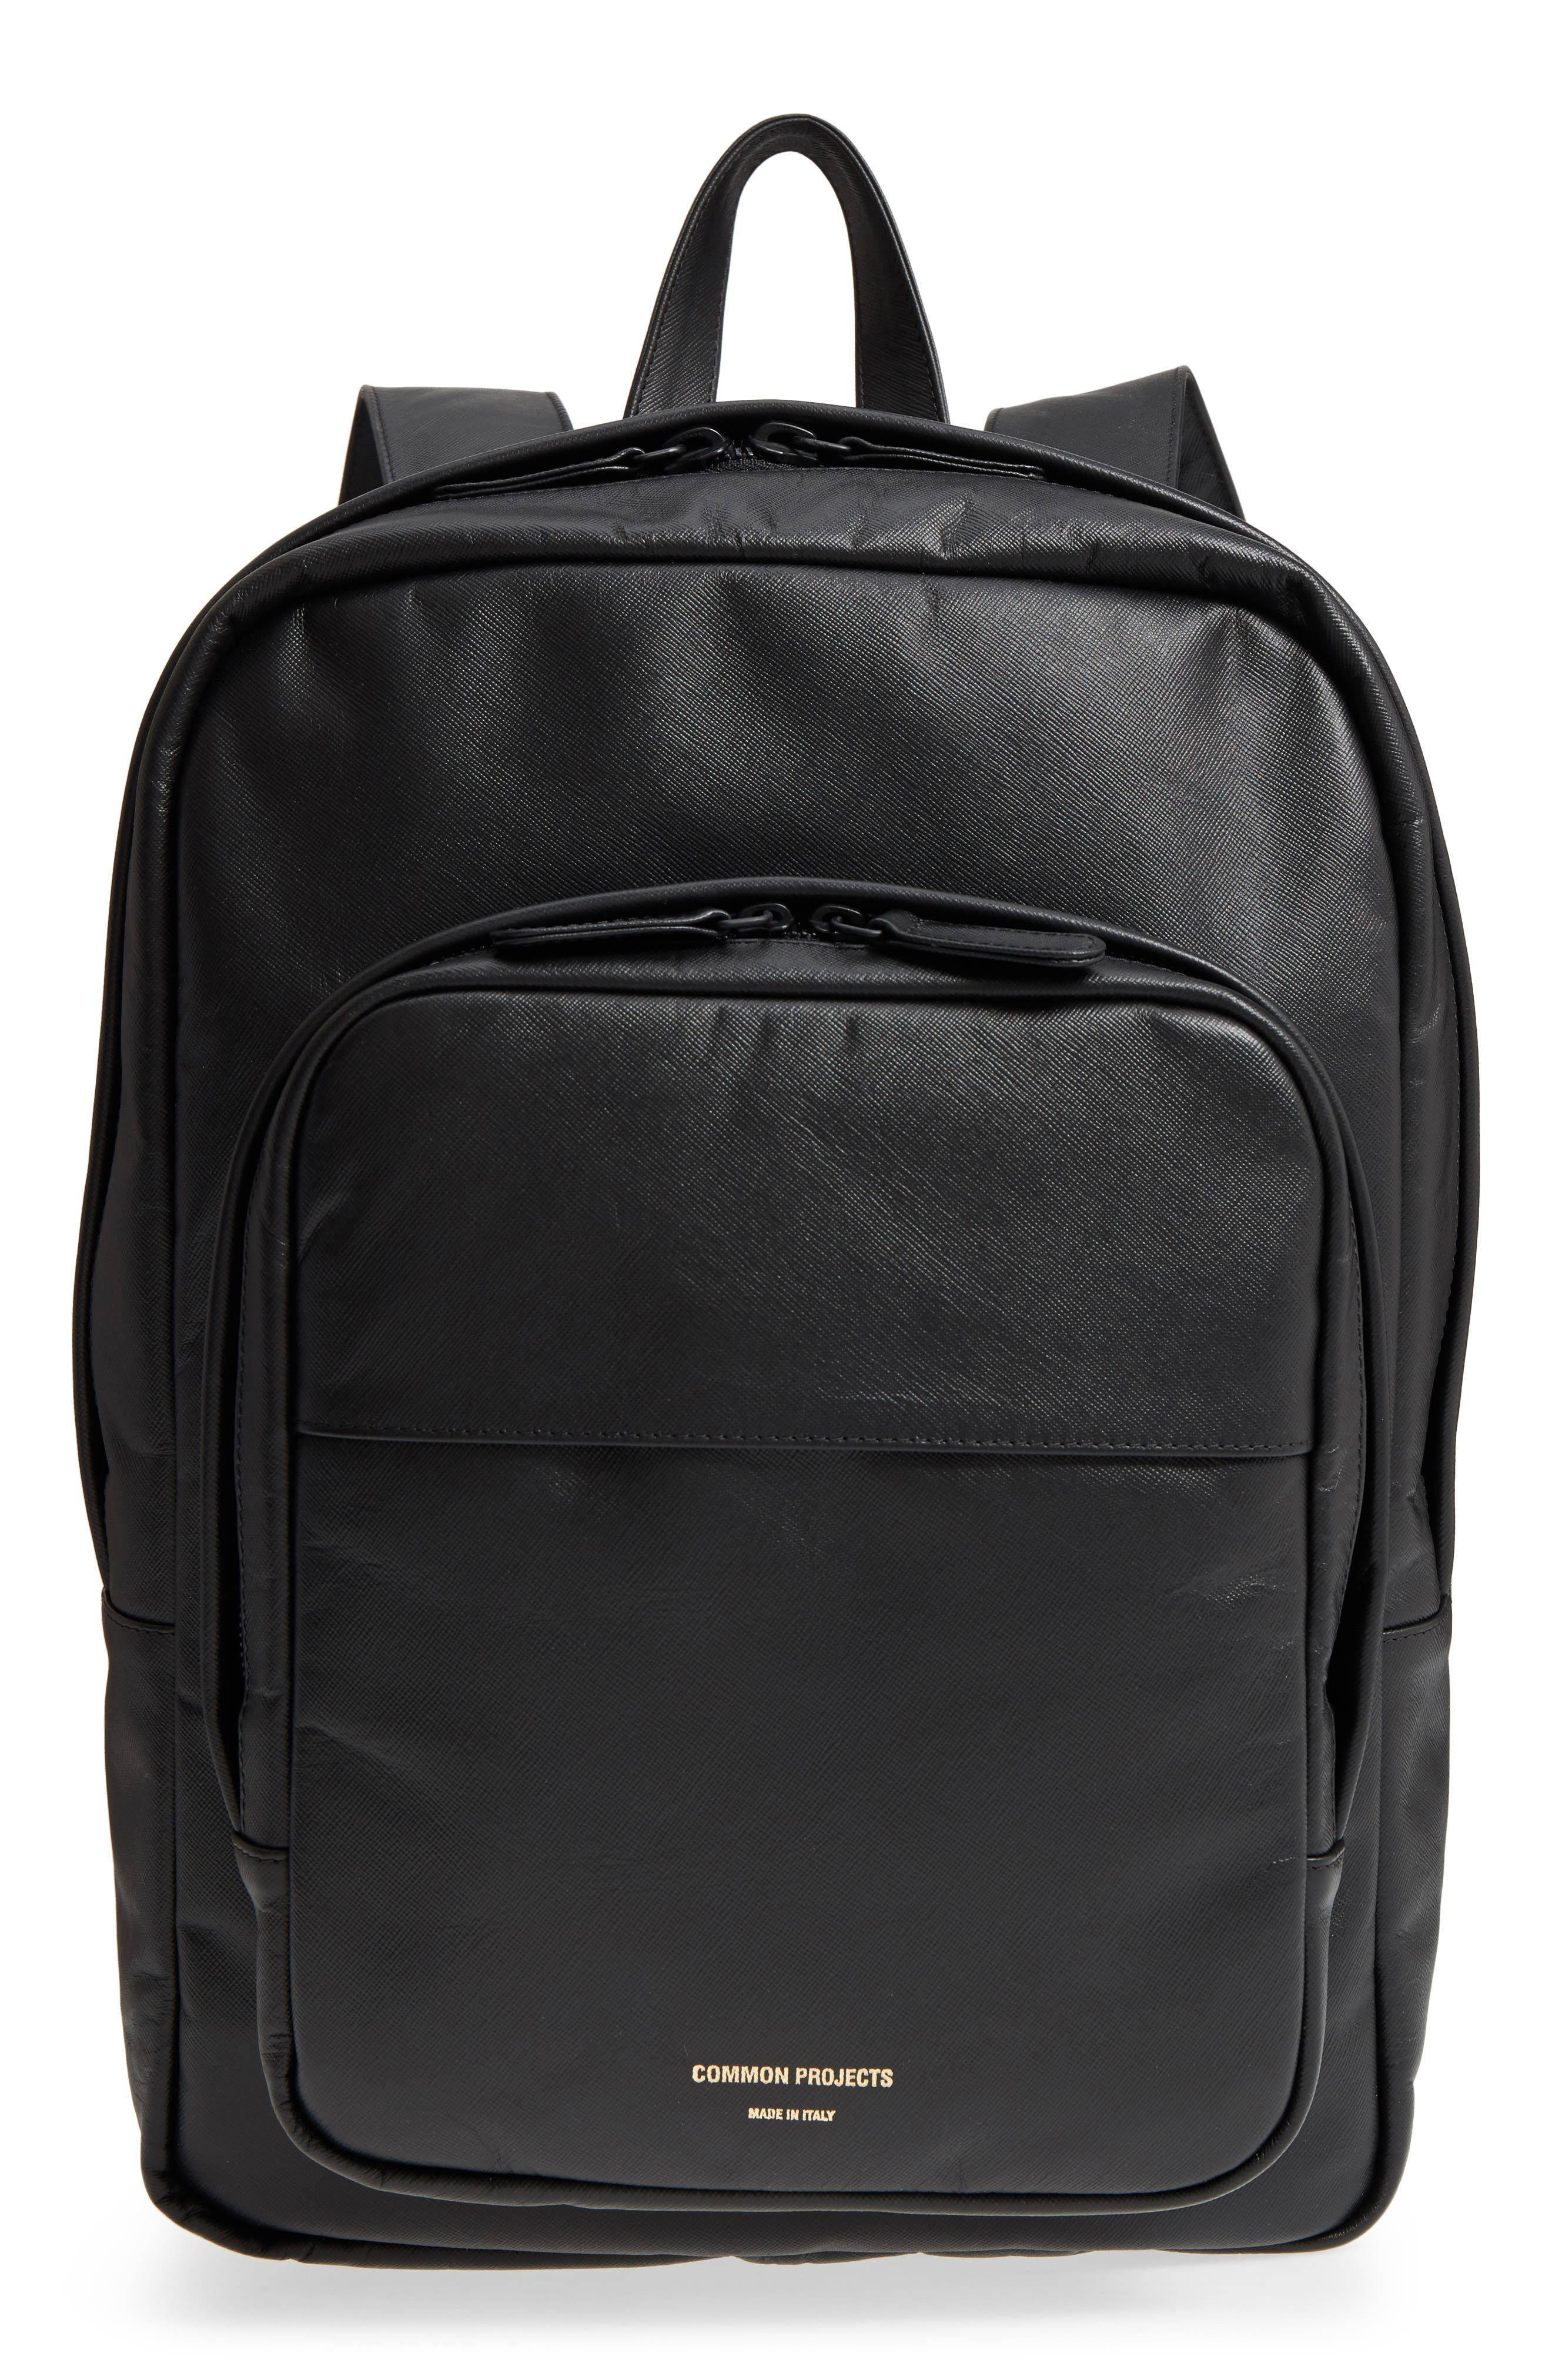 Saffiano Leather Backpack,                             Main thumbnail 1, color,                             Black